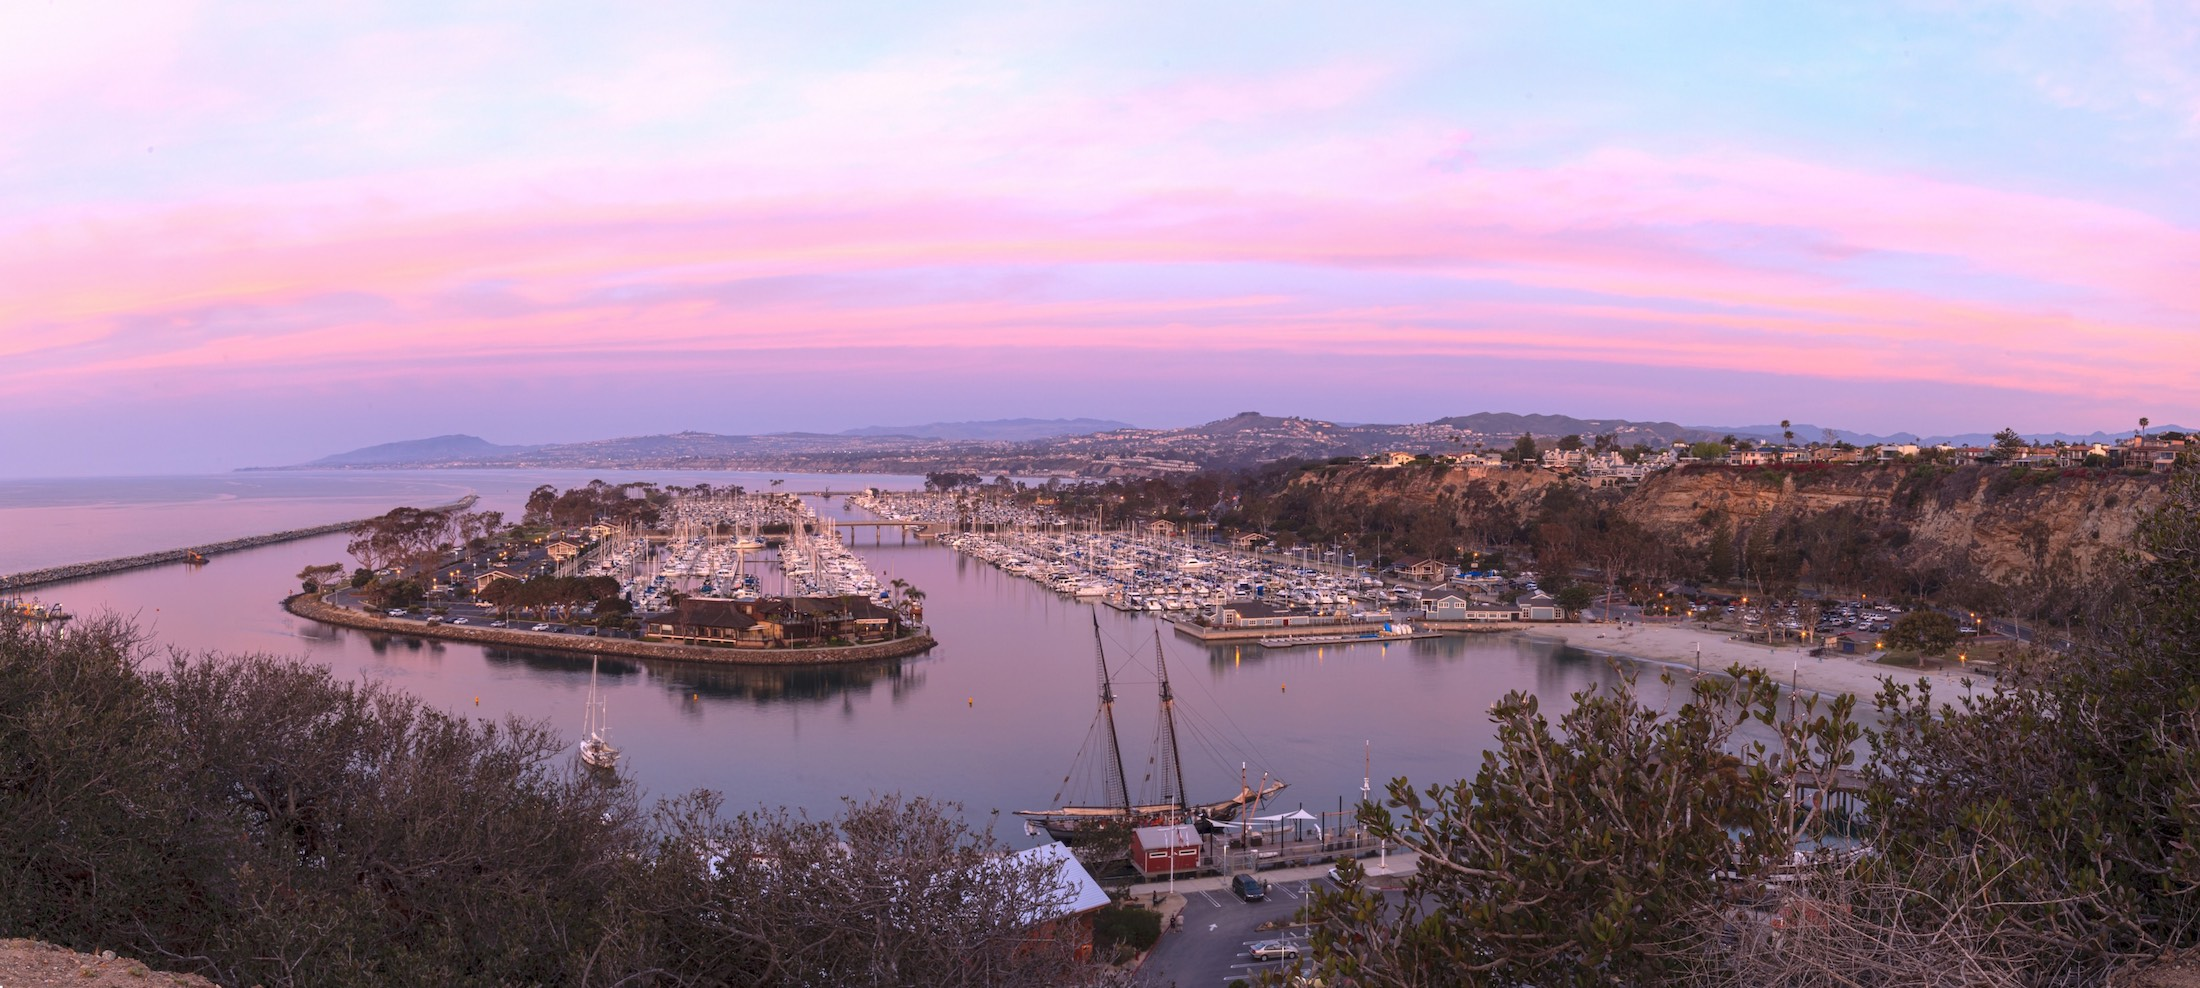 Dana Point Harbor OC CA